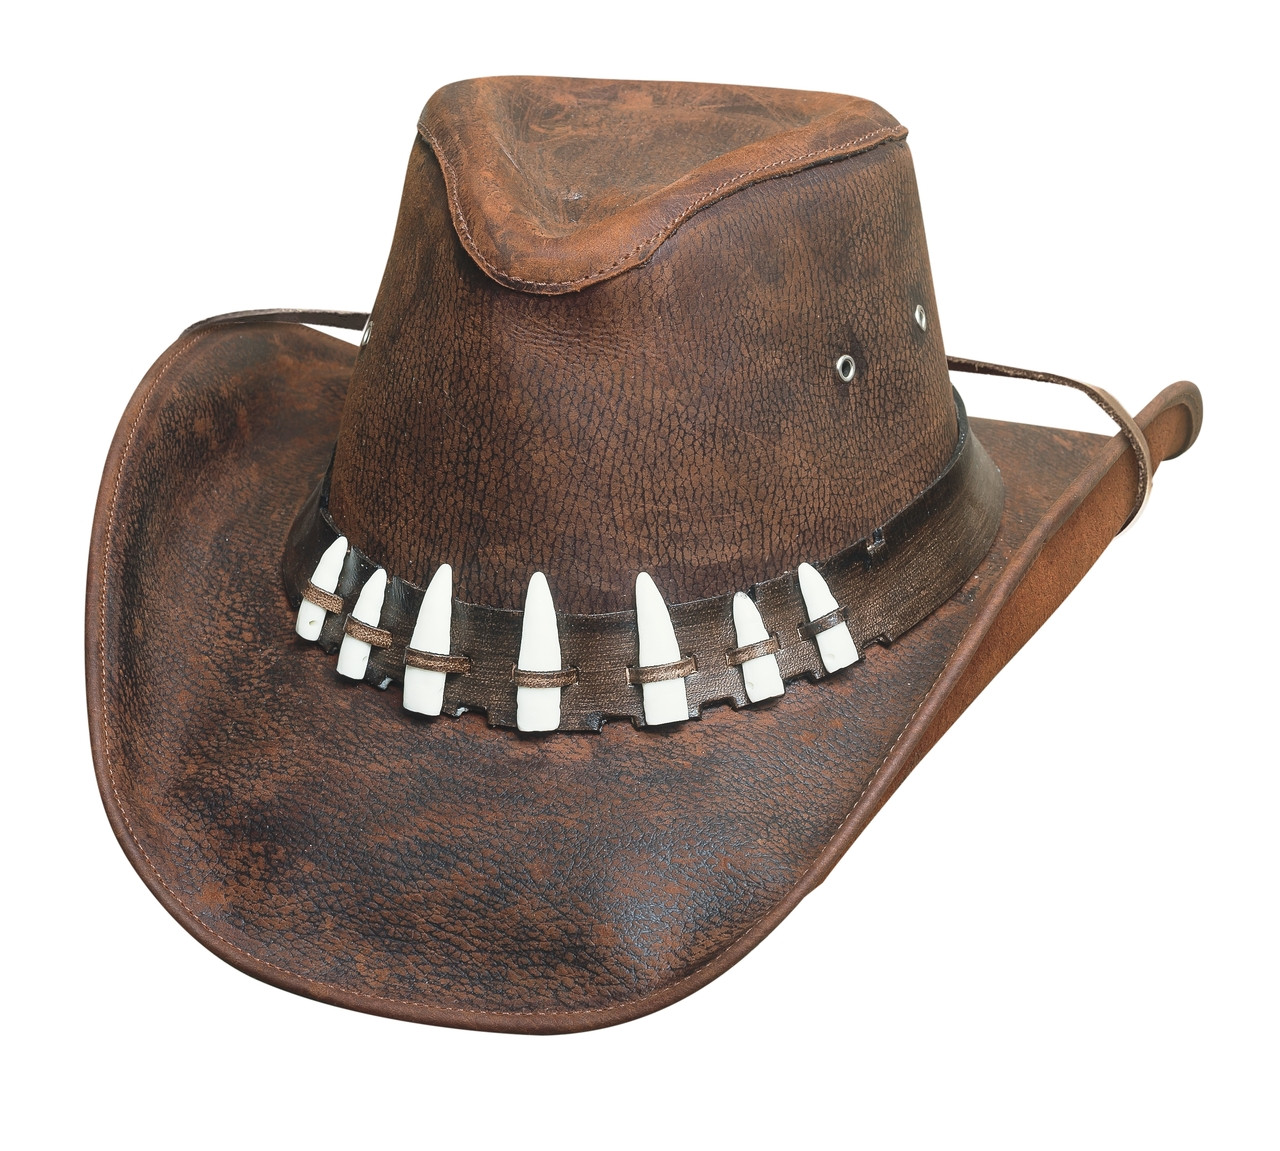 4d3d95c79b1c1 Croc Dundee Crock Teeth Hat - The Spiffy Hat Chocolate. Image 1. Loading  zoom